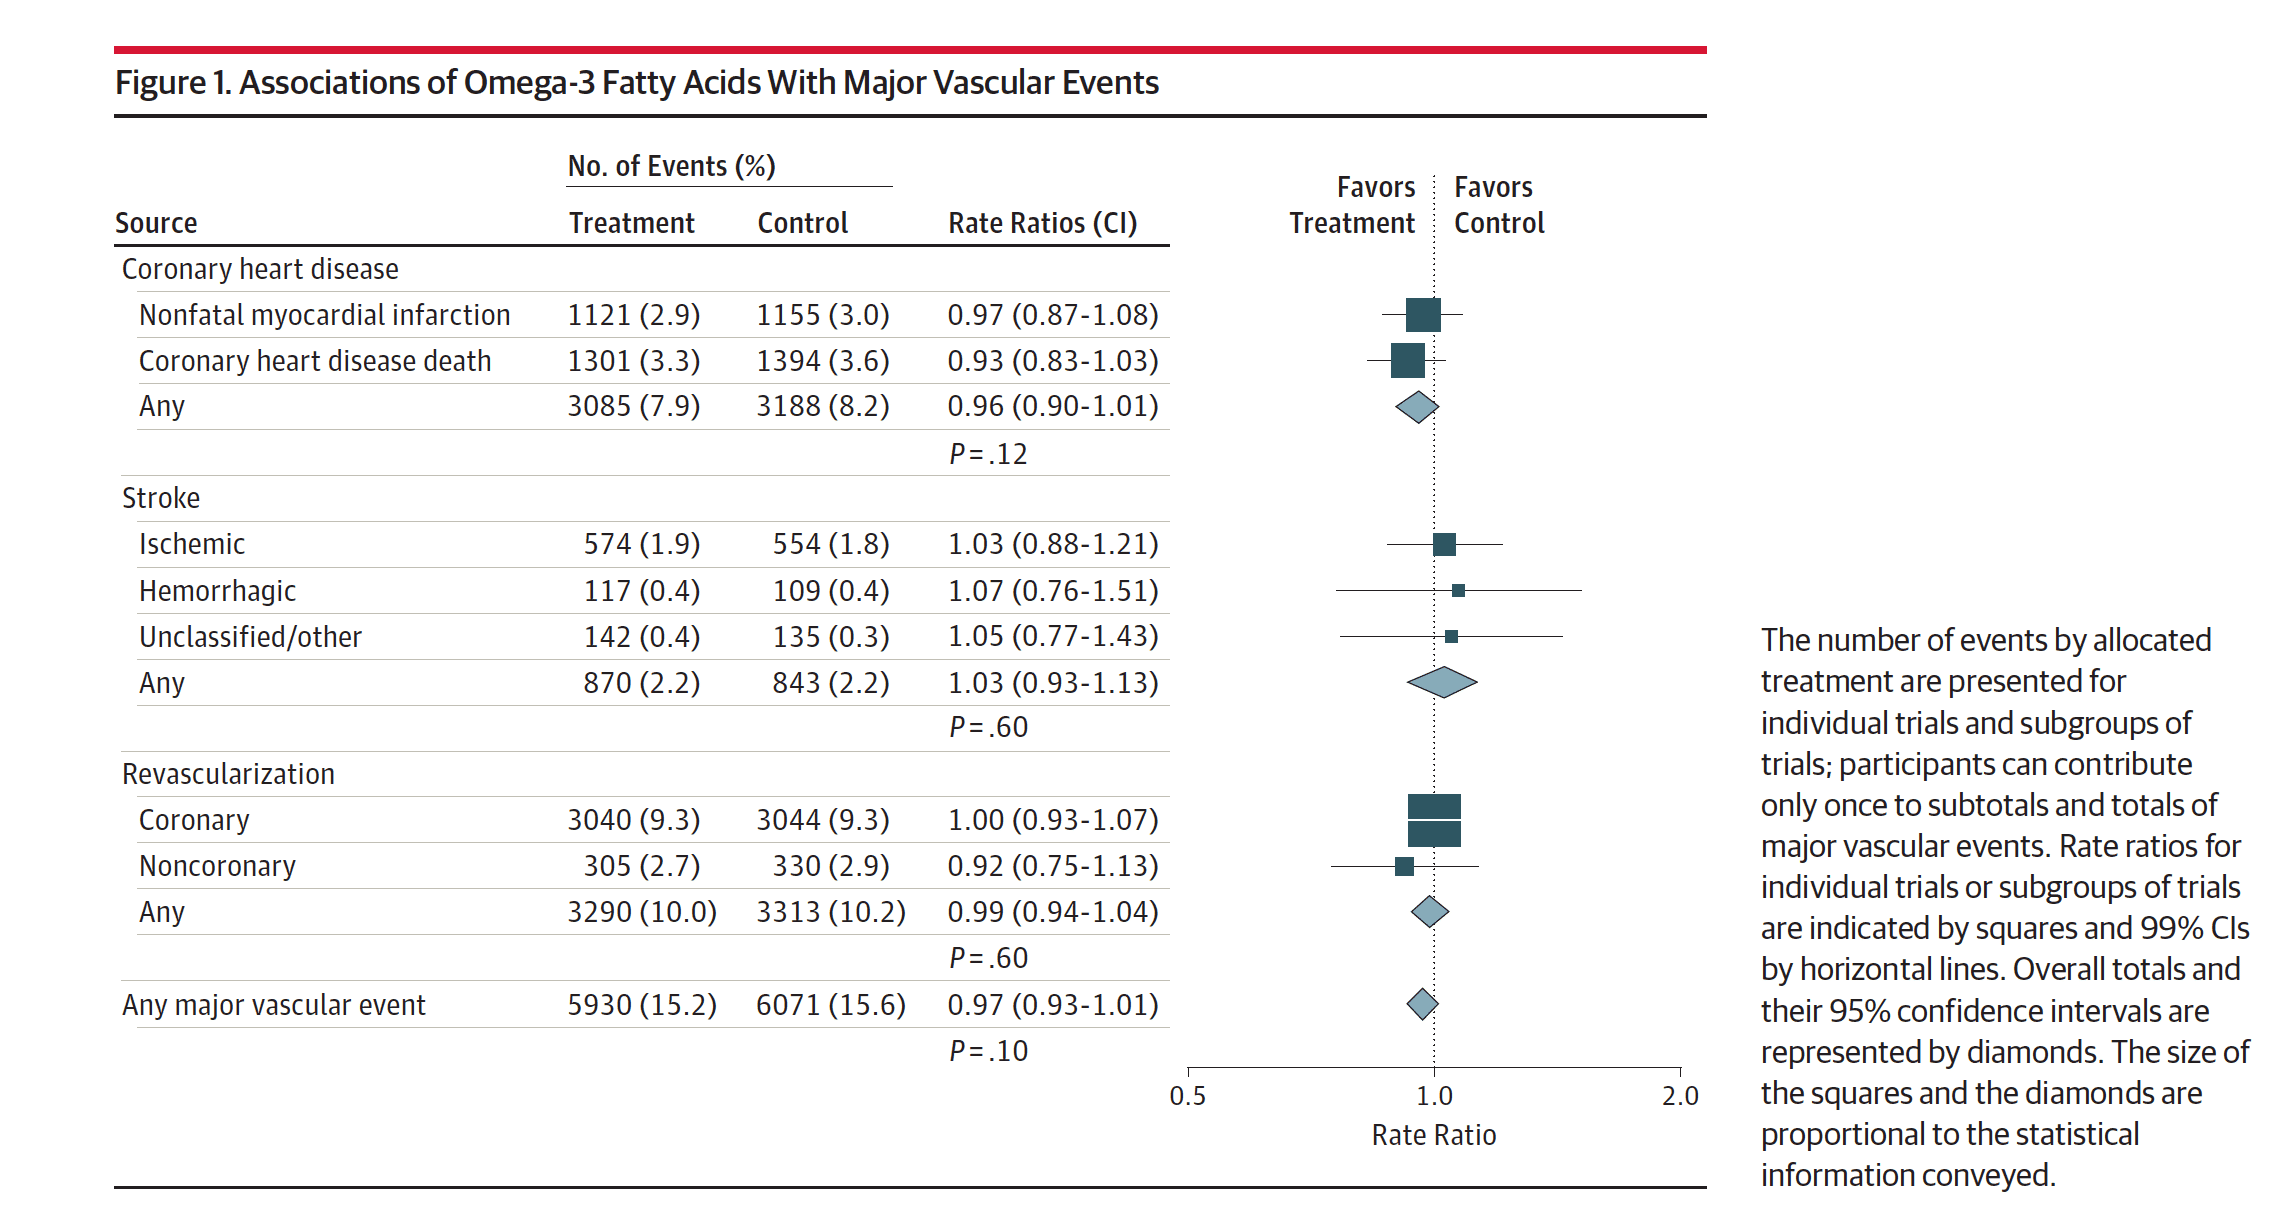 Forest plot from the JAMA study of fish oil intake and cardiovascular disease events